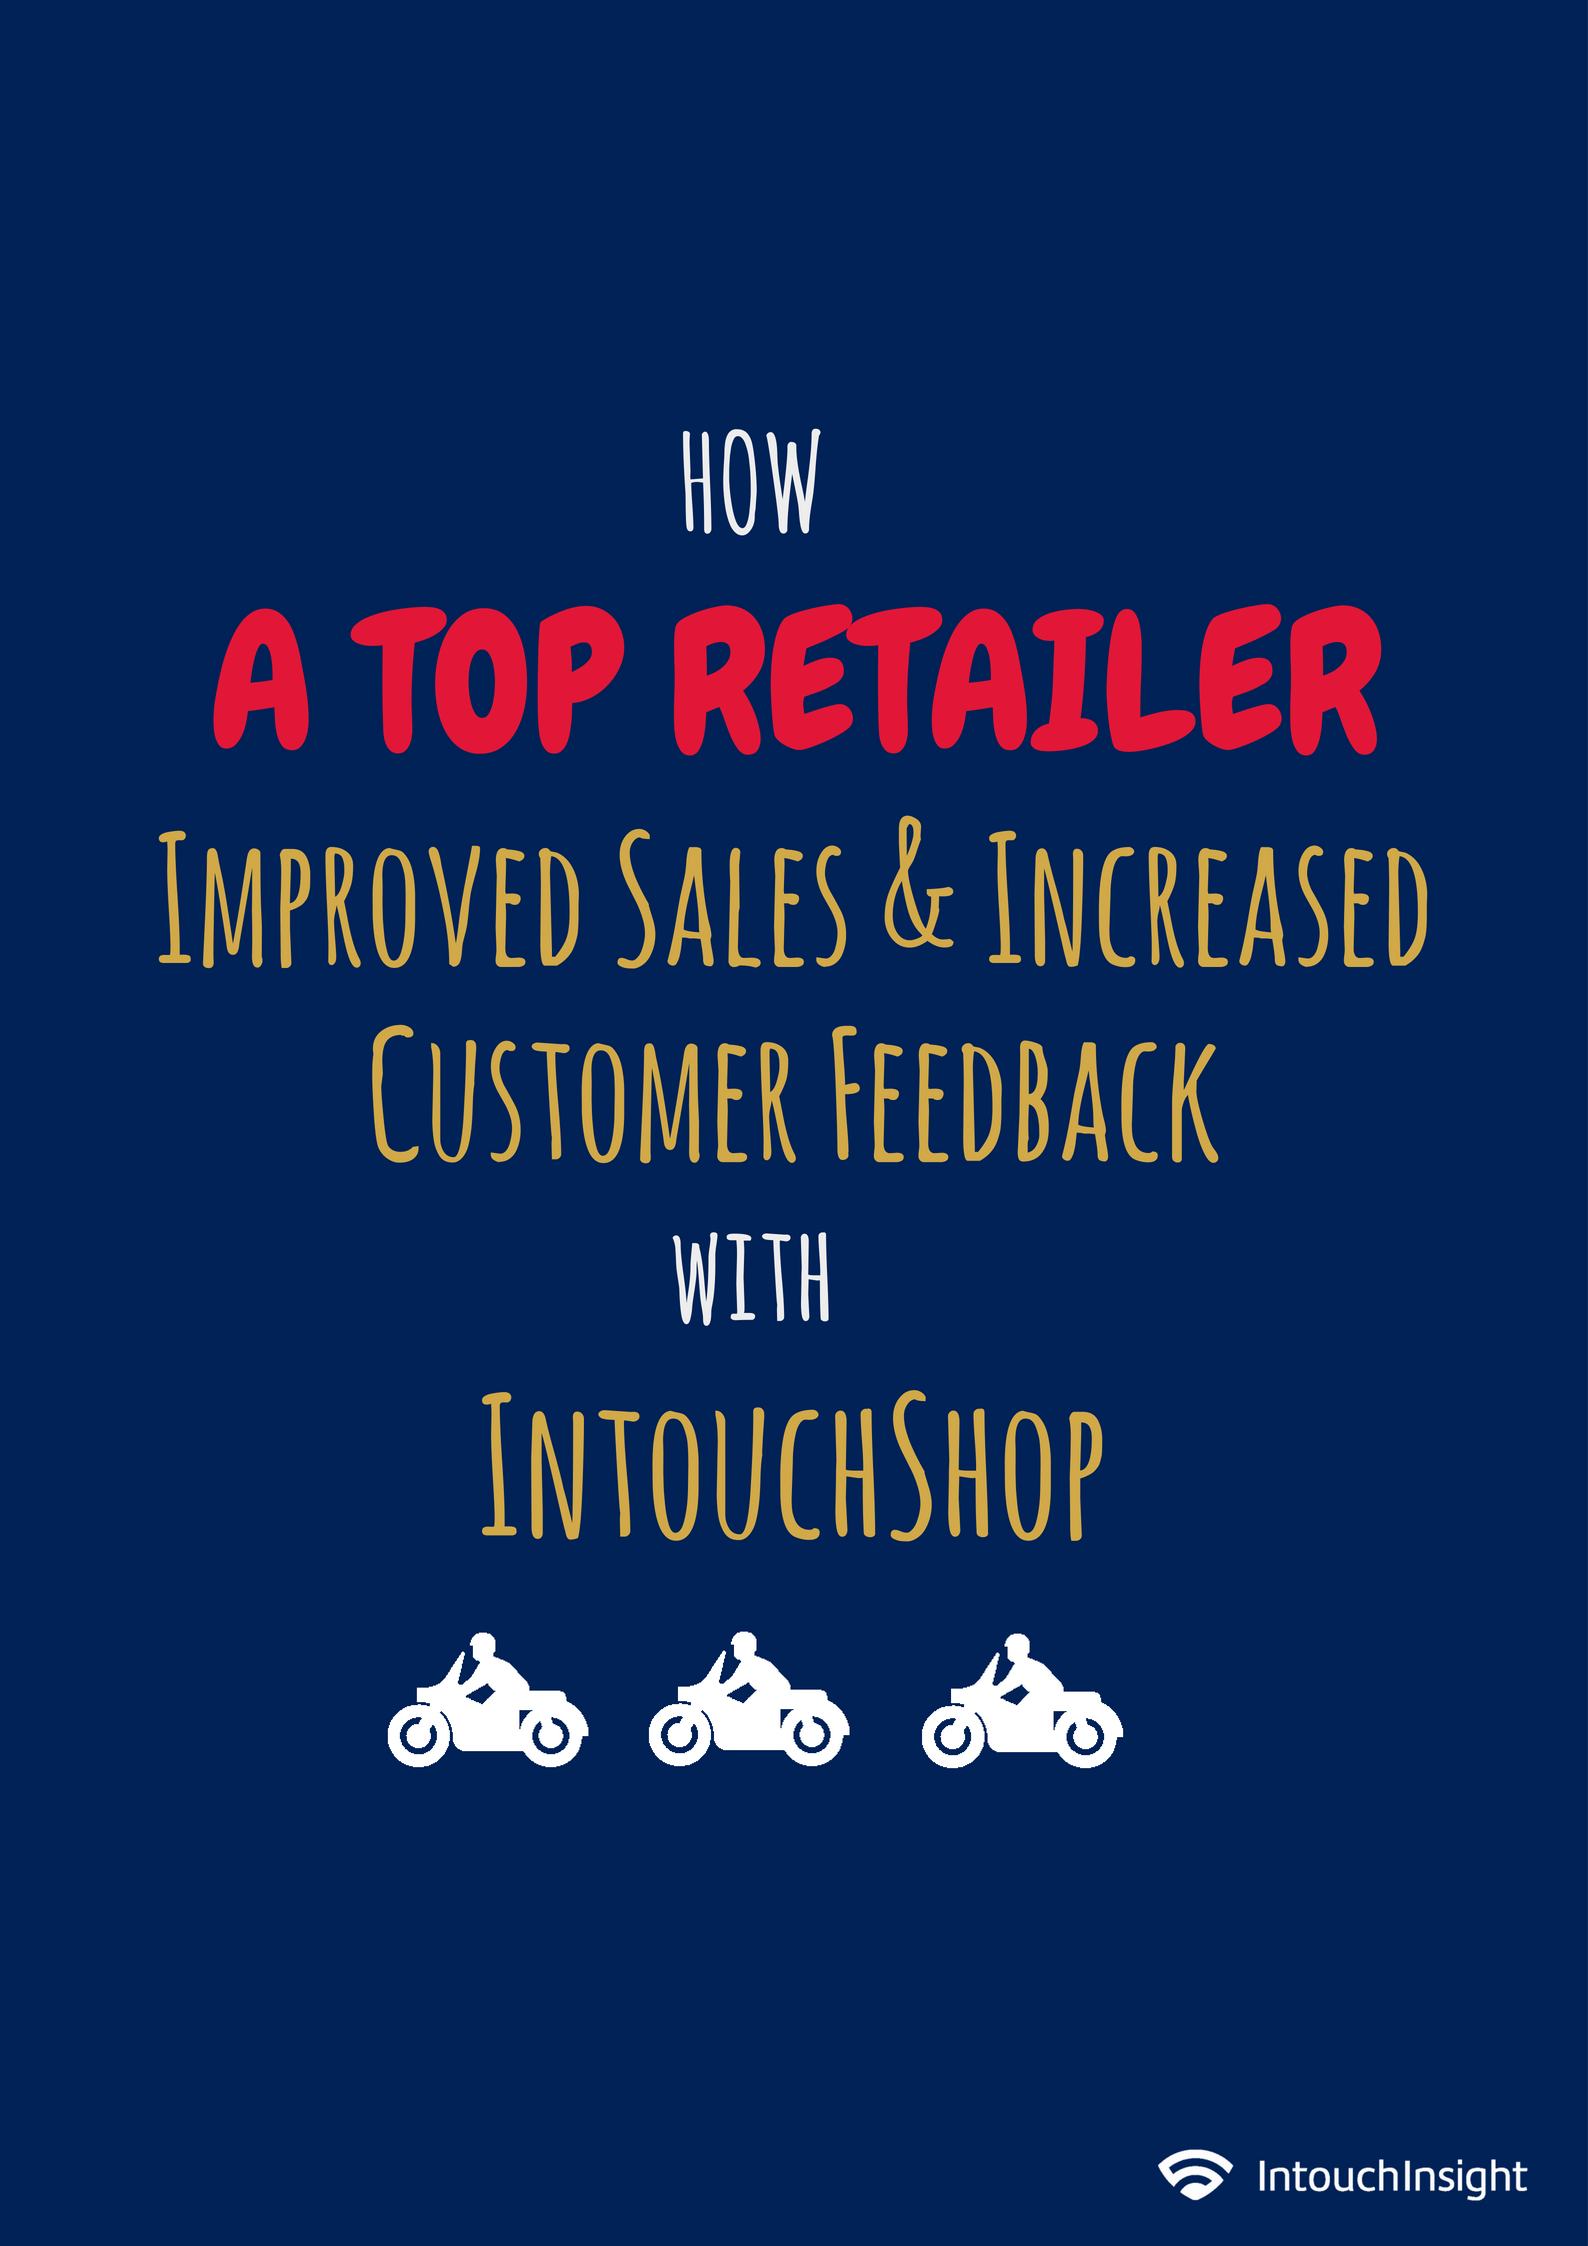 Case Study IntouchShop Mystery Shopping Services